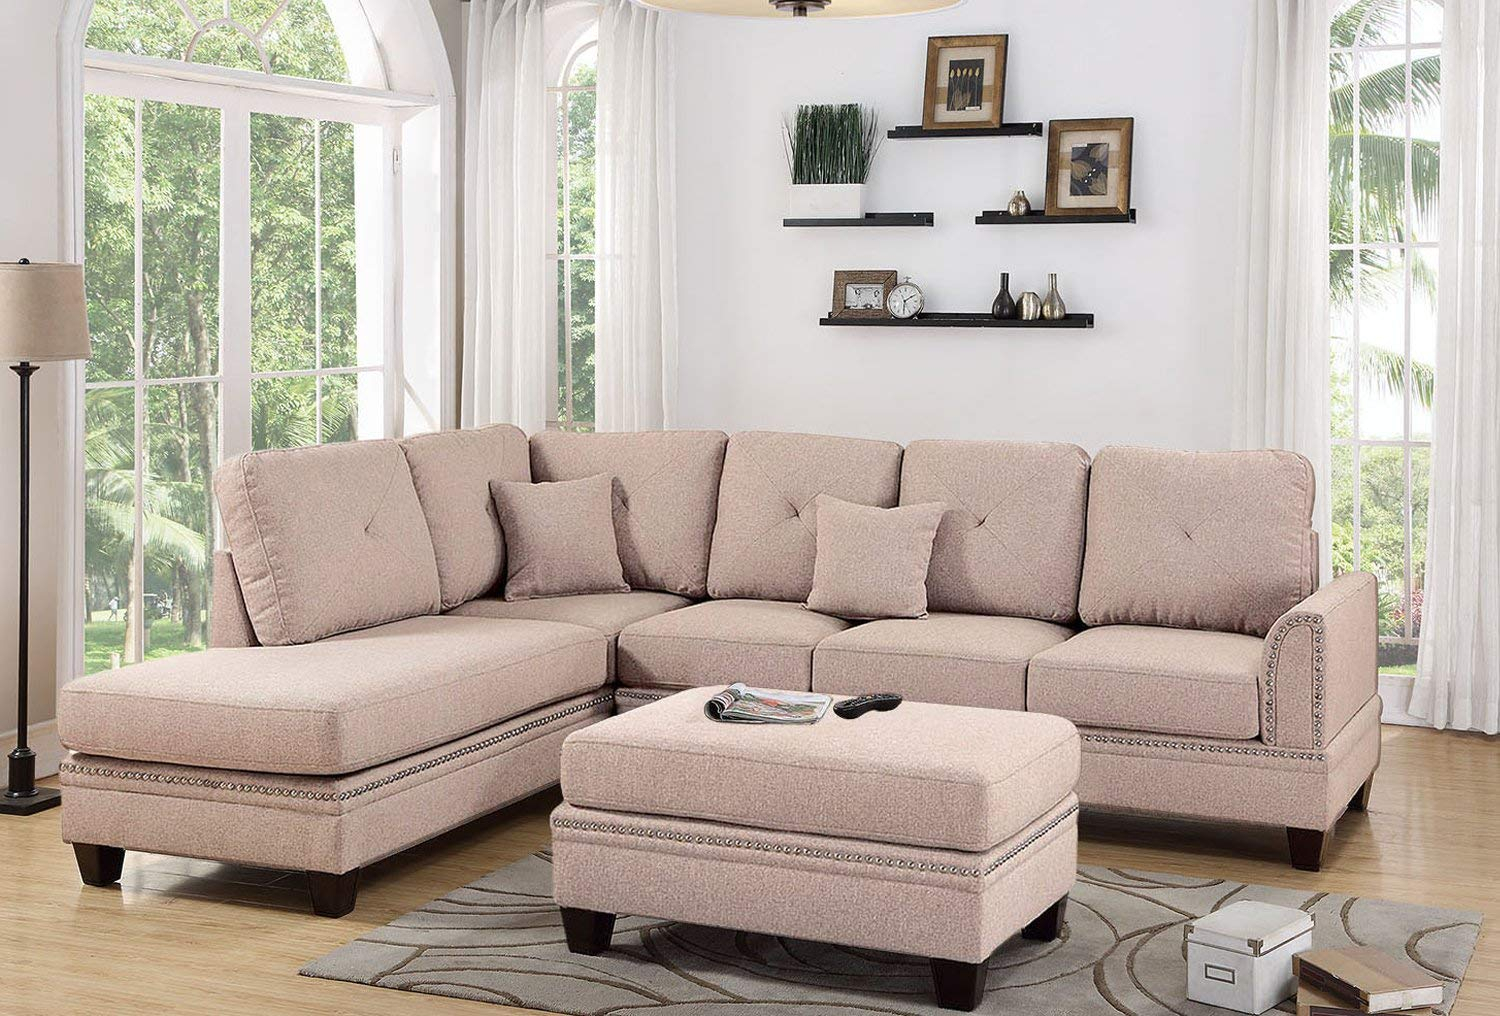 Coffee 2Pc Sectional Sofa With Nail Head Trim Accents Intended For 2Pc Polyfiber Sectional Sofas With Nailhead Trims Gray (View 15 of 15)